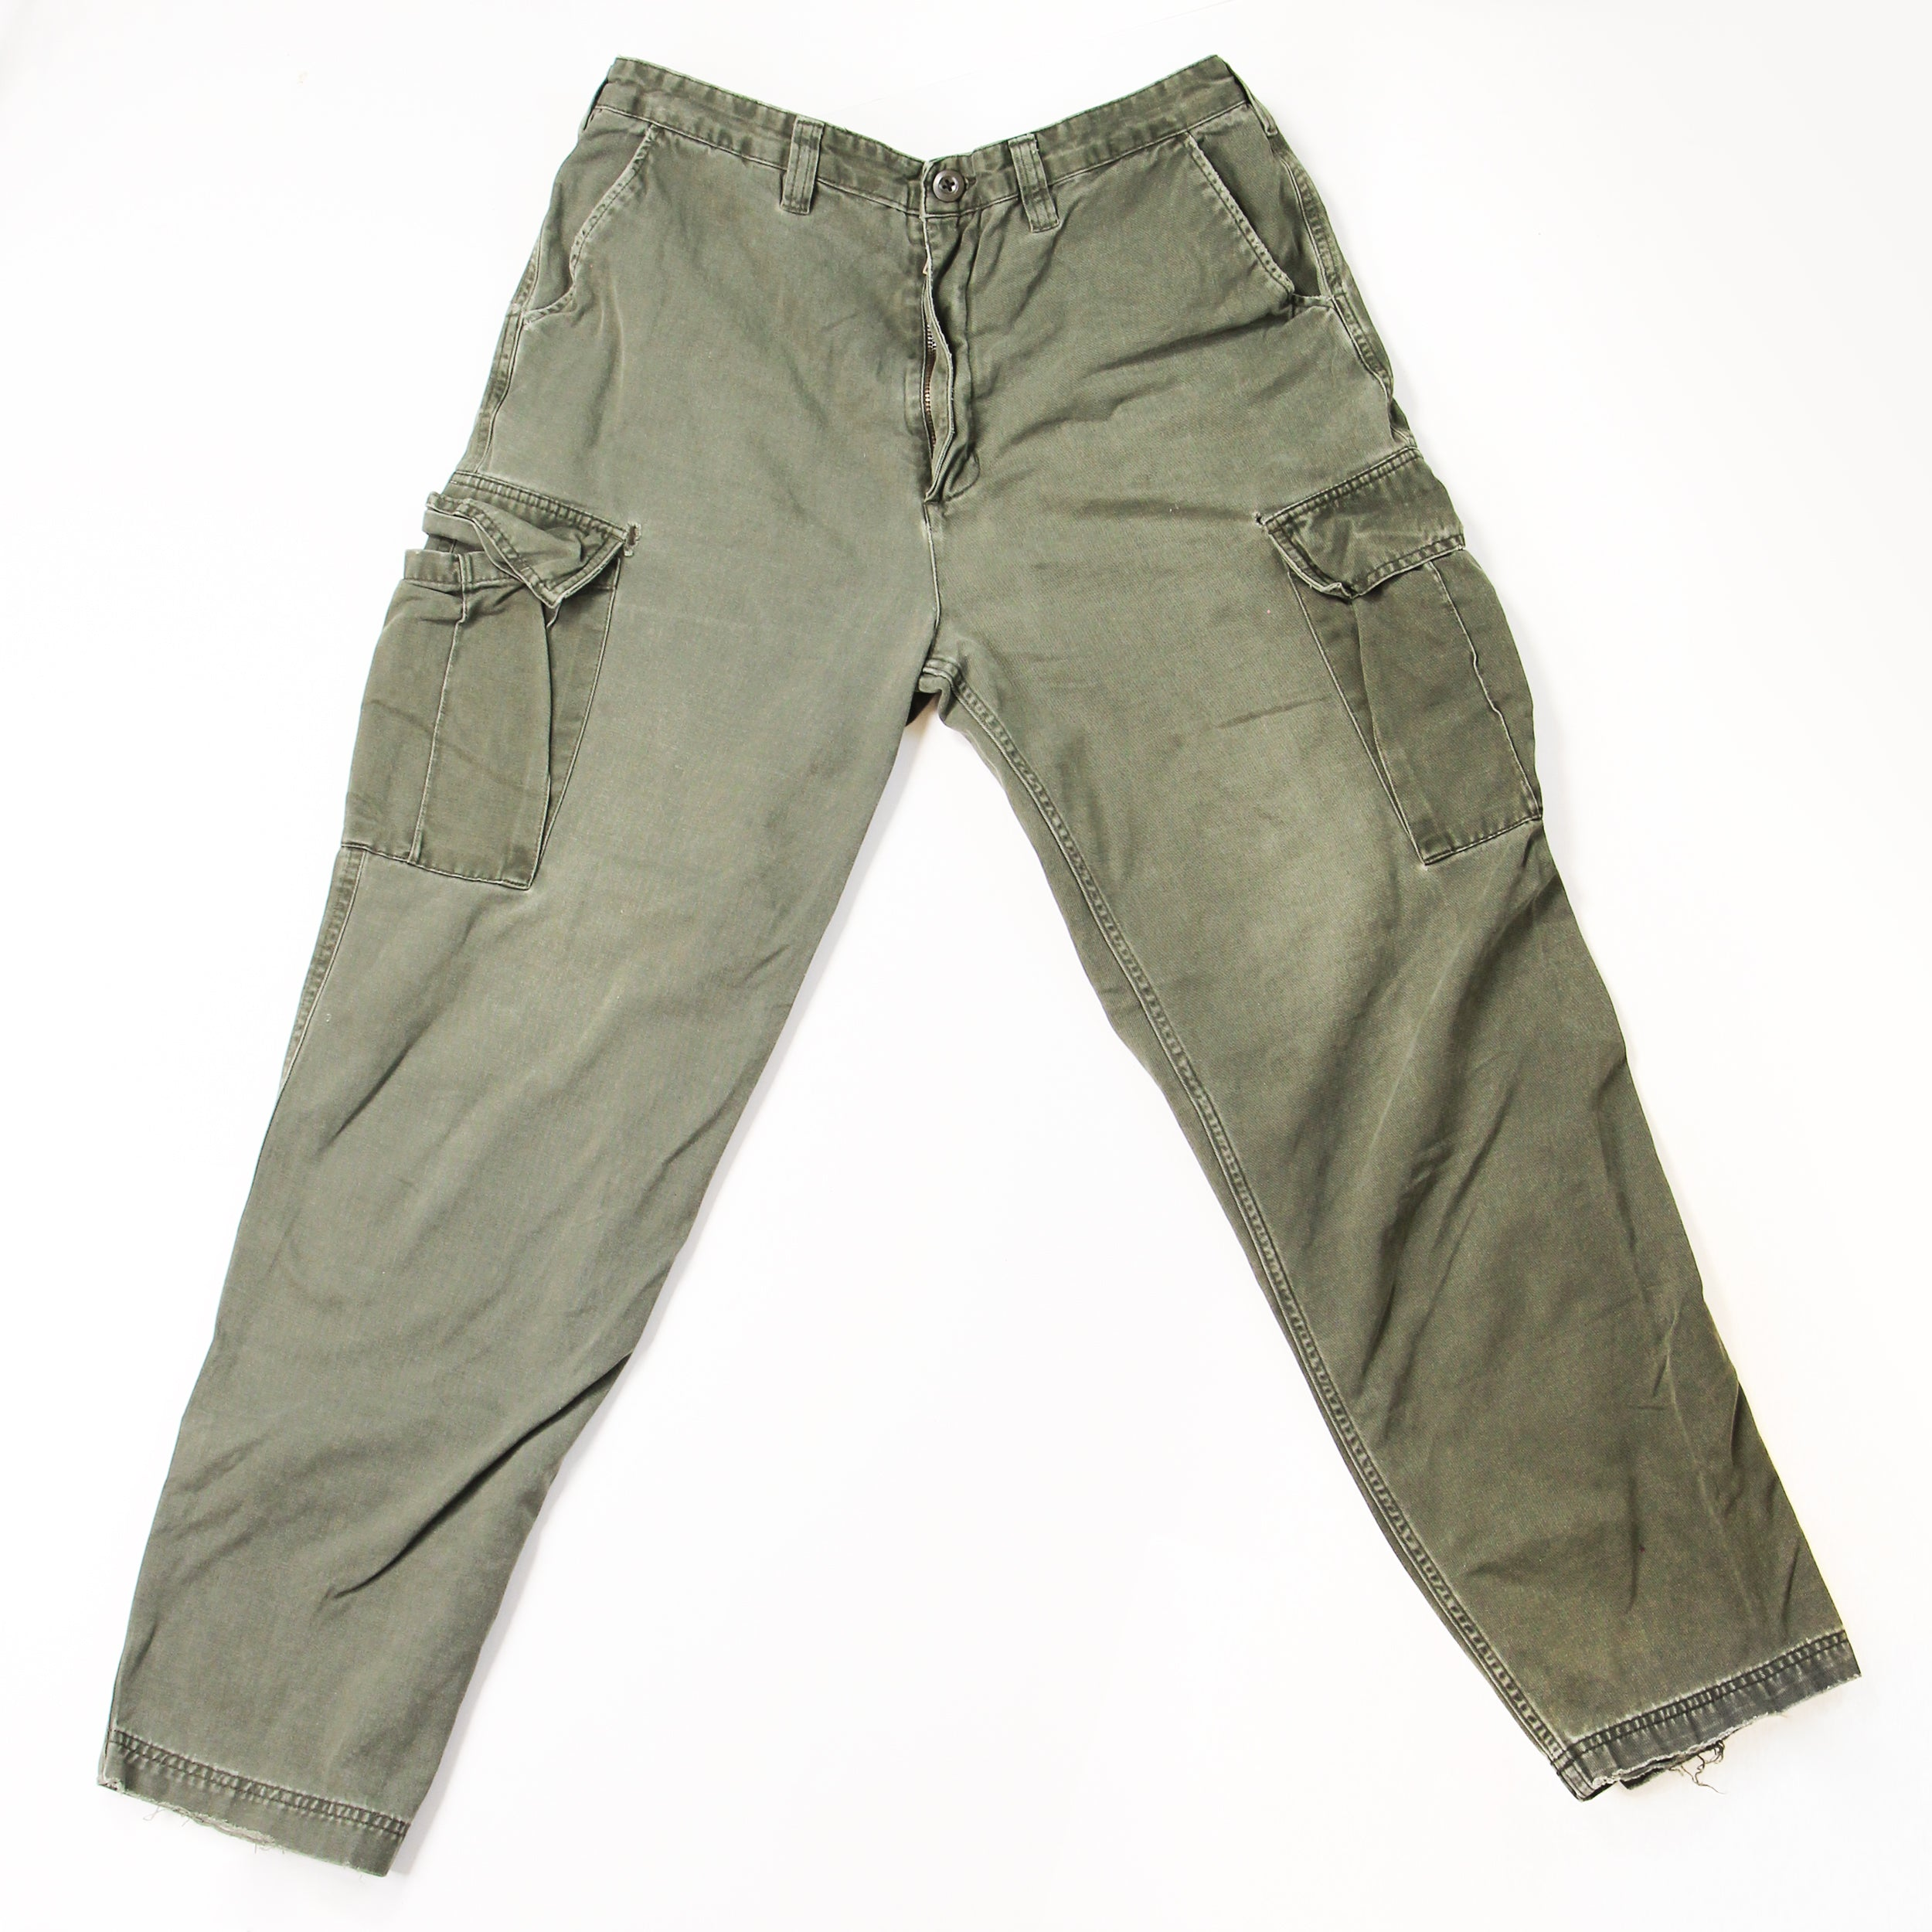 Covington - Green Cargo Pants - 36x38